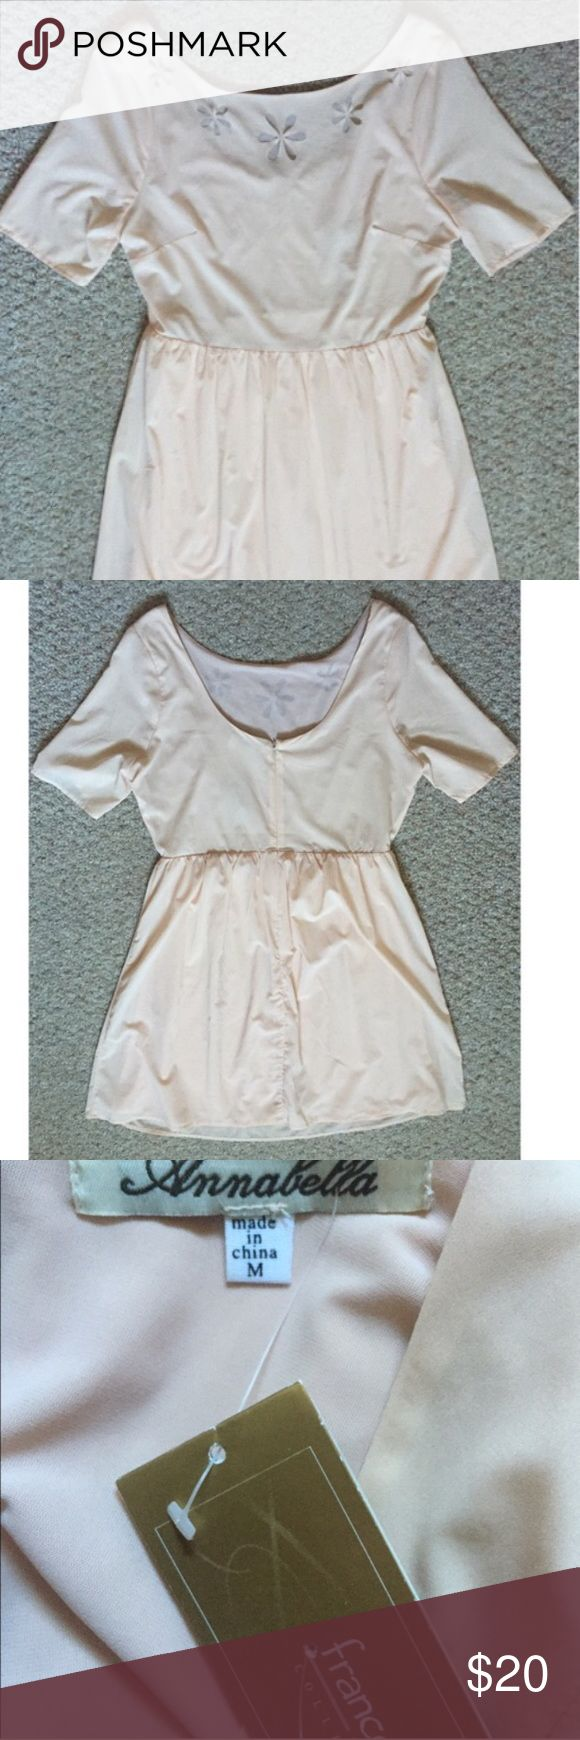 Francesca's Cream Mini Dress NWT Beautiful NWT Francesca's cream colored dress with petal cutouts that are sheer. Size medium. Zippered back  No trades or modeling 🚫 Smoke free but pet friendly home 🐶🐱 Please use offer button, no low balls! 💋 Francesca's Collections Dresses Mini